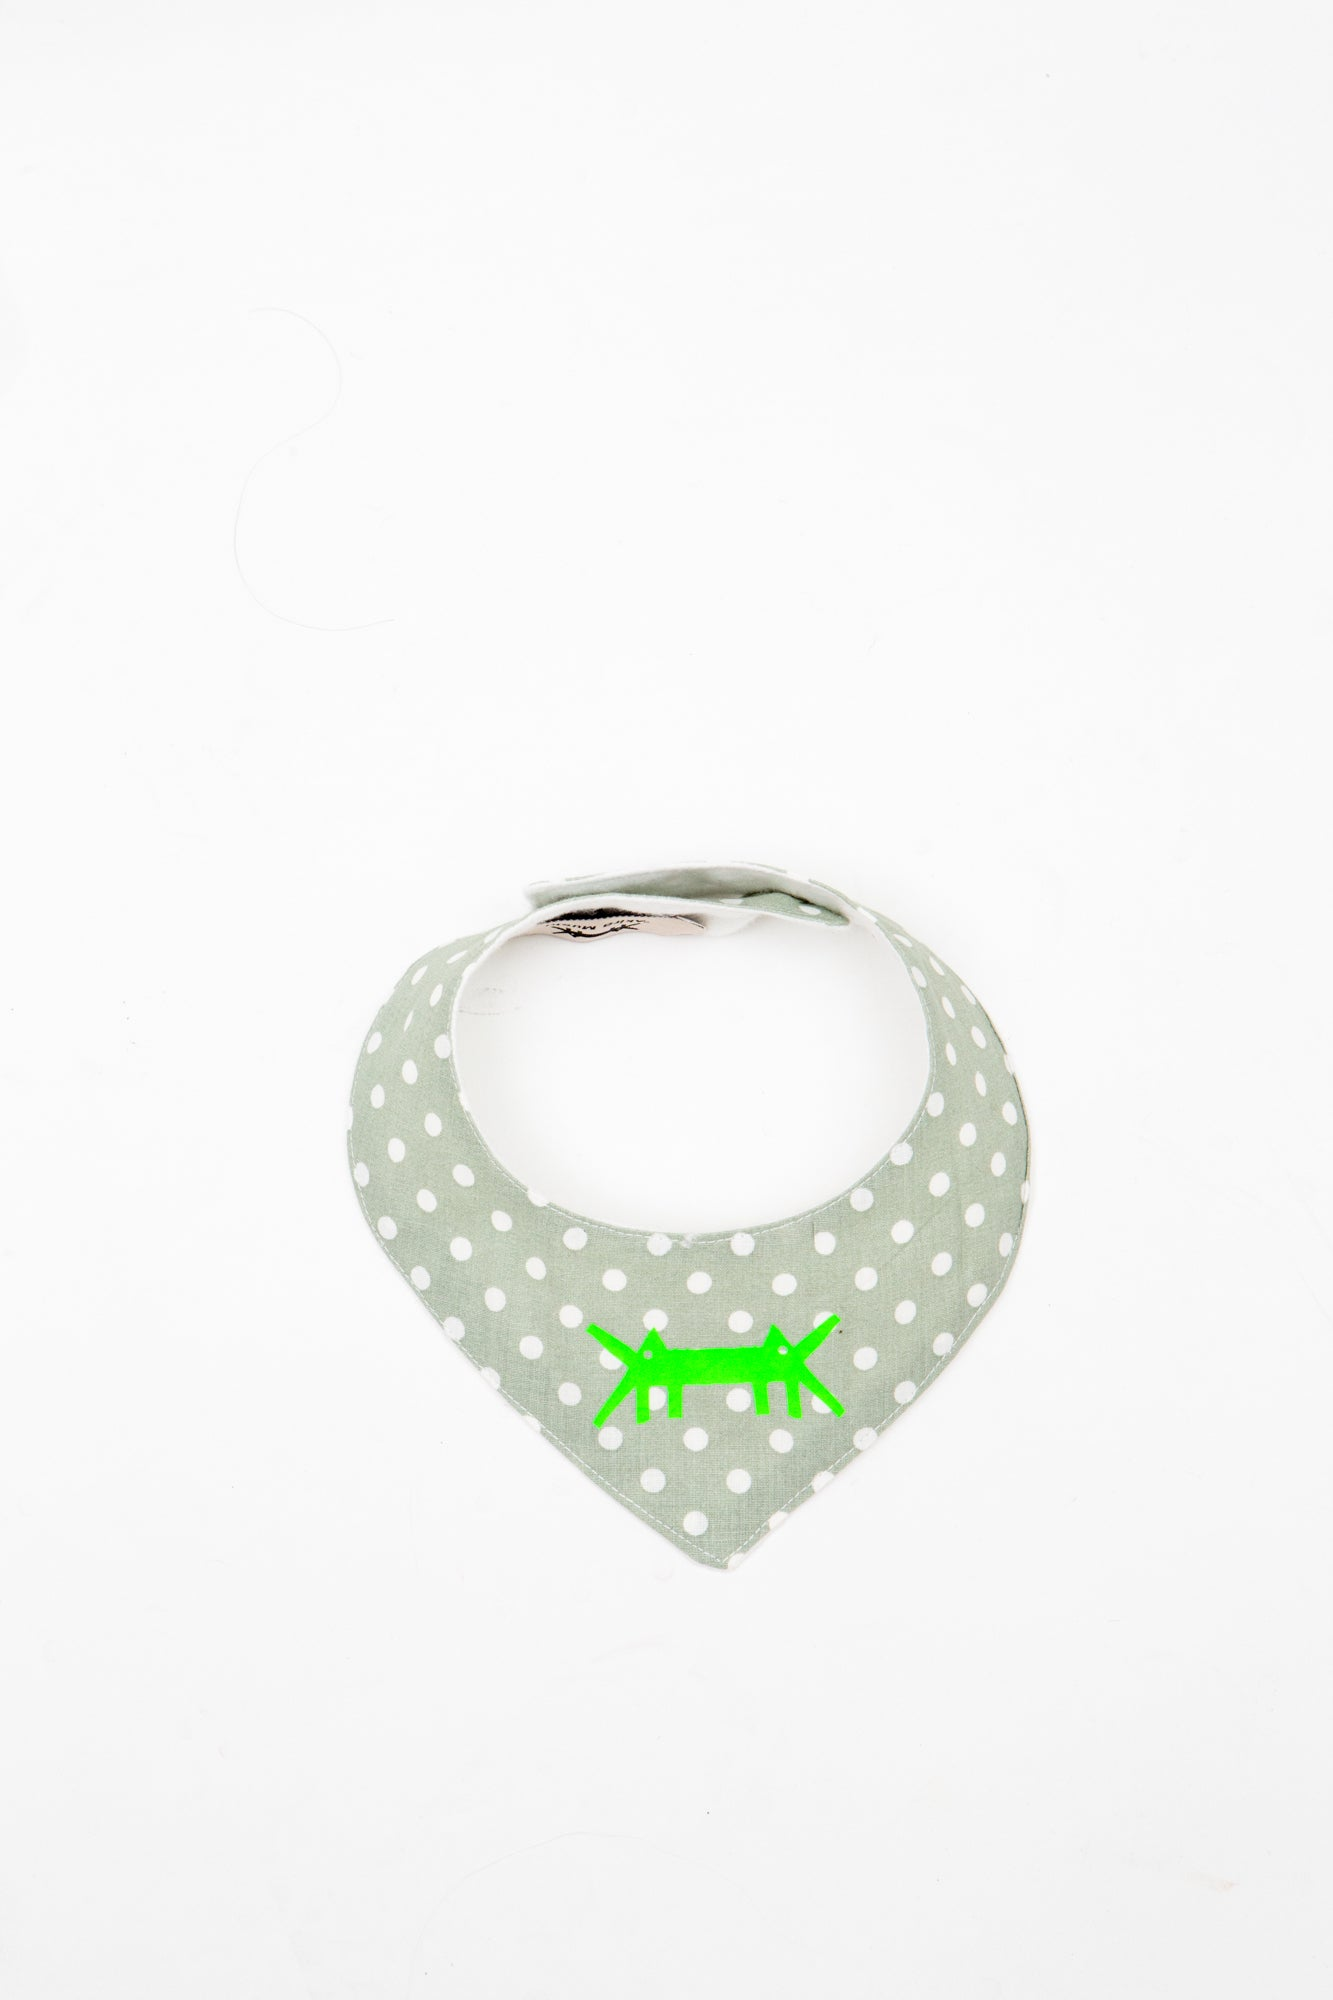 Baby Scarf Bib in Mint Polka Dots